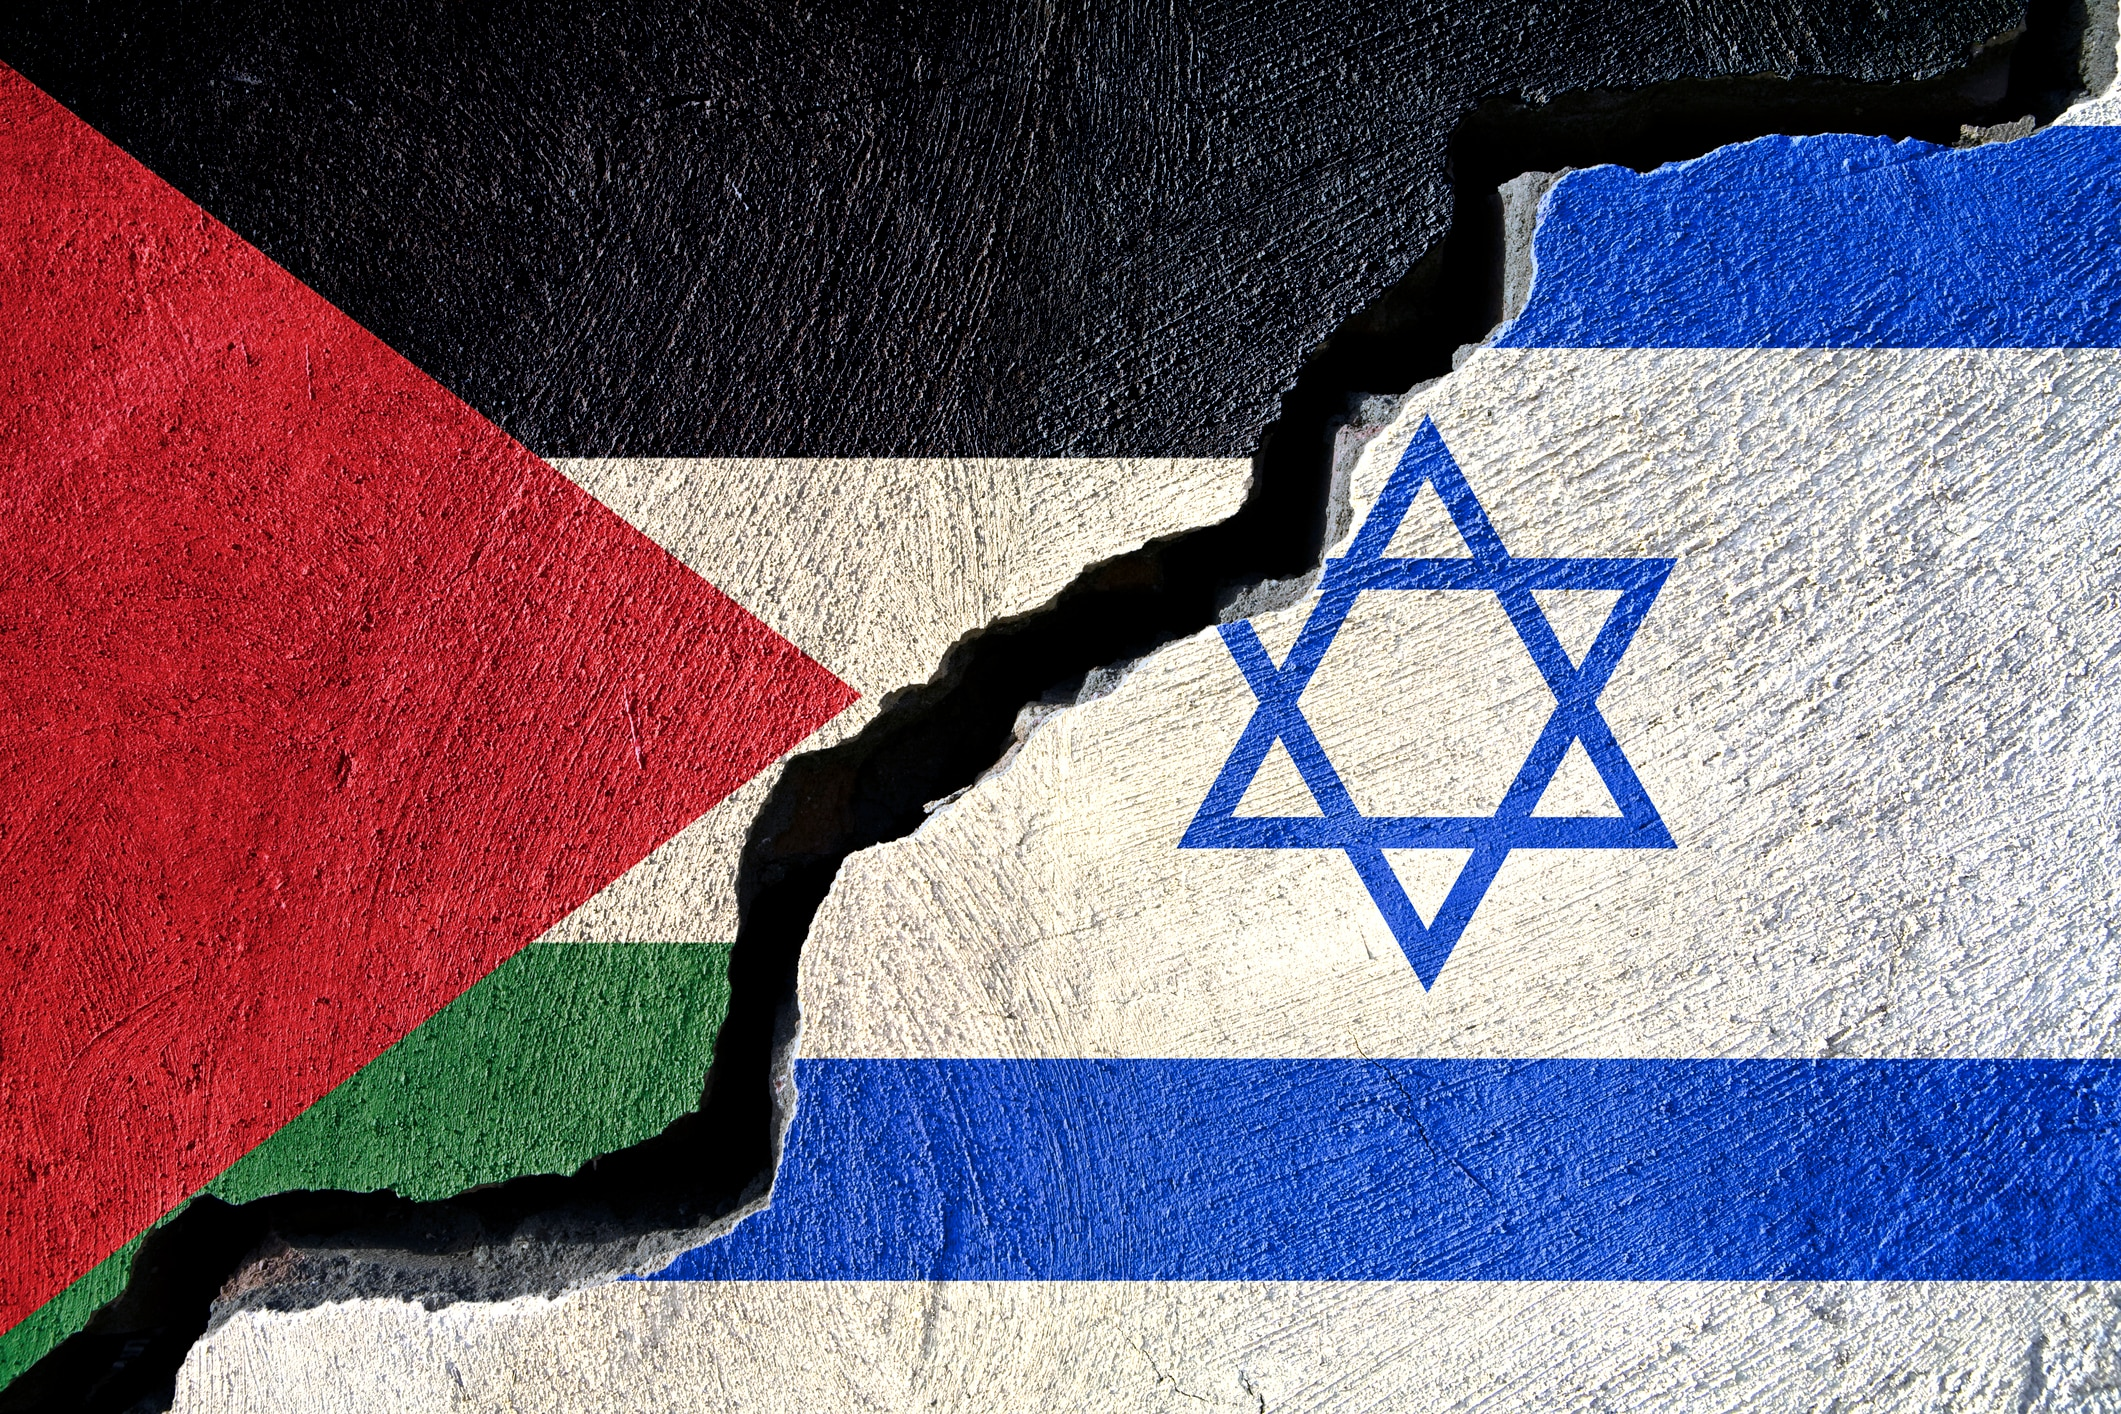 Tensions in Near East: Israeli-Palestinian clashes